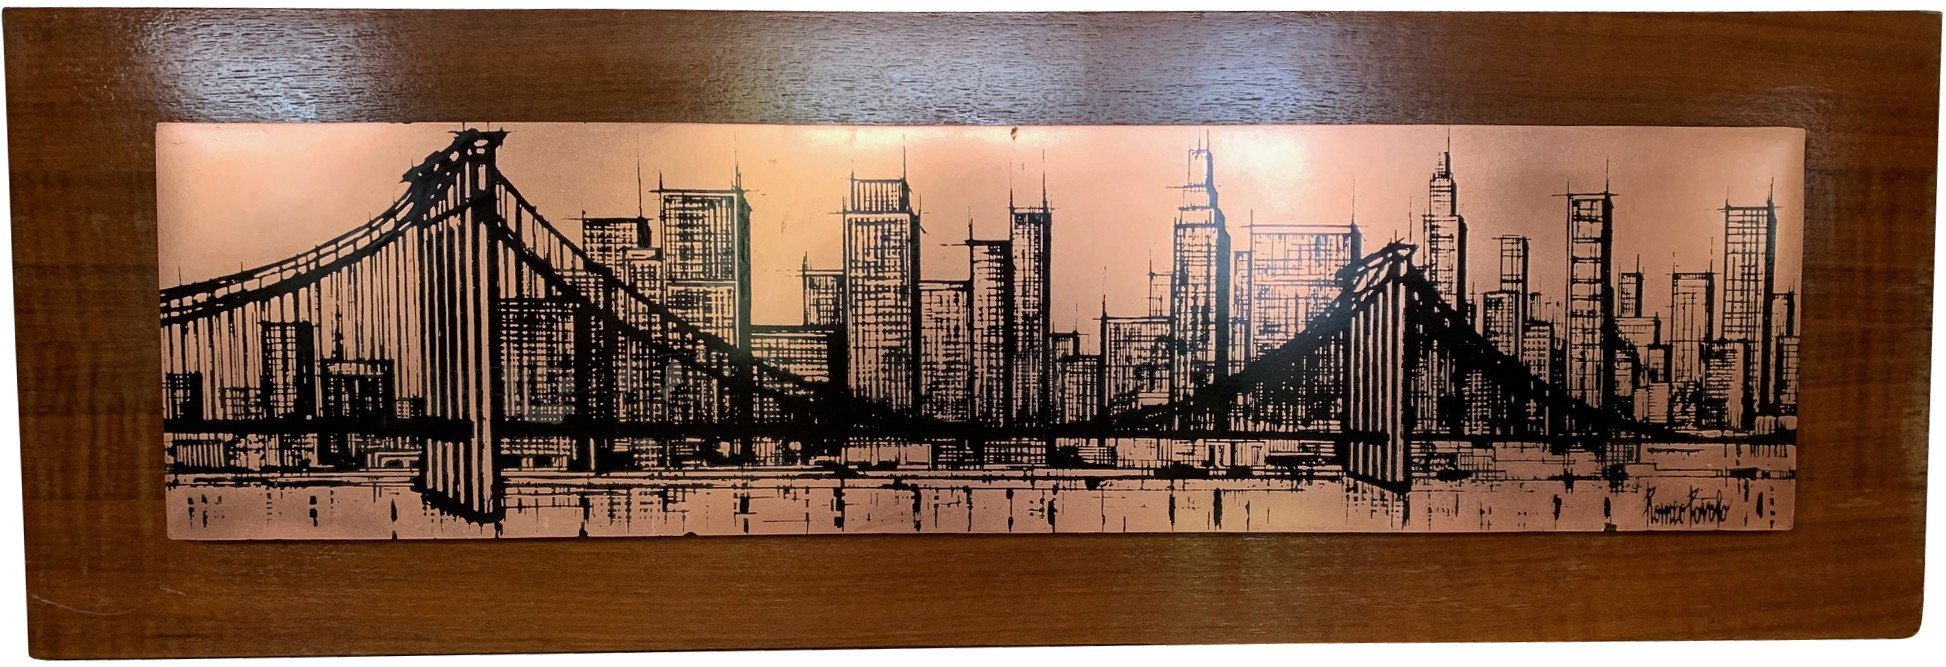 Manhattan on Copper Plate by R. Povolo, 1970s